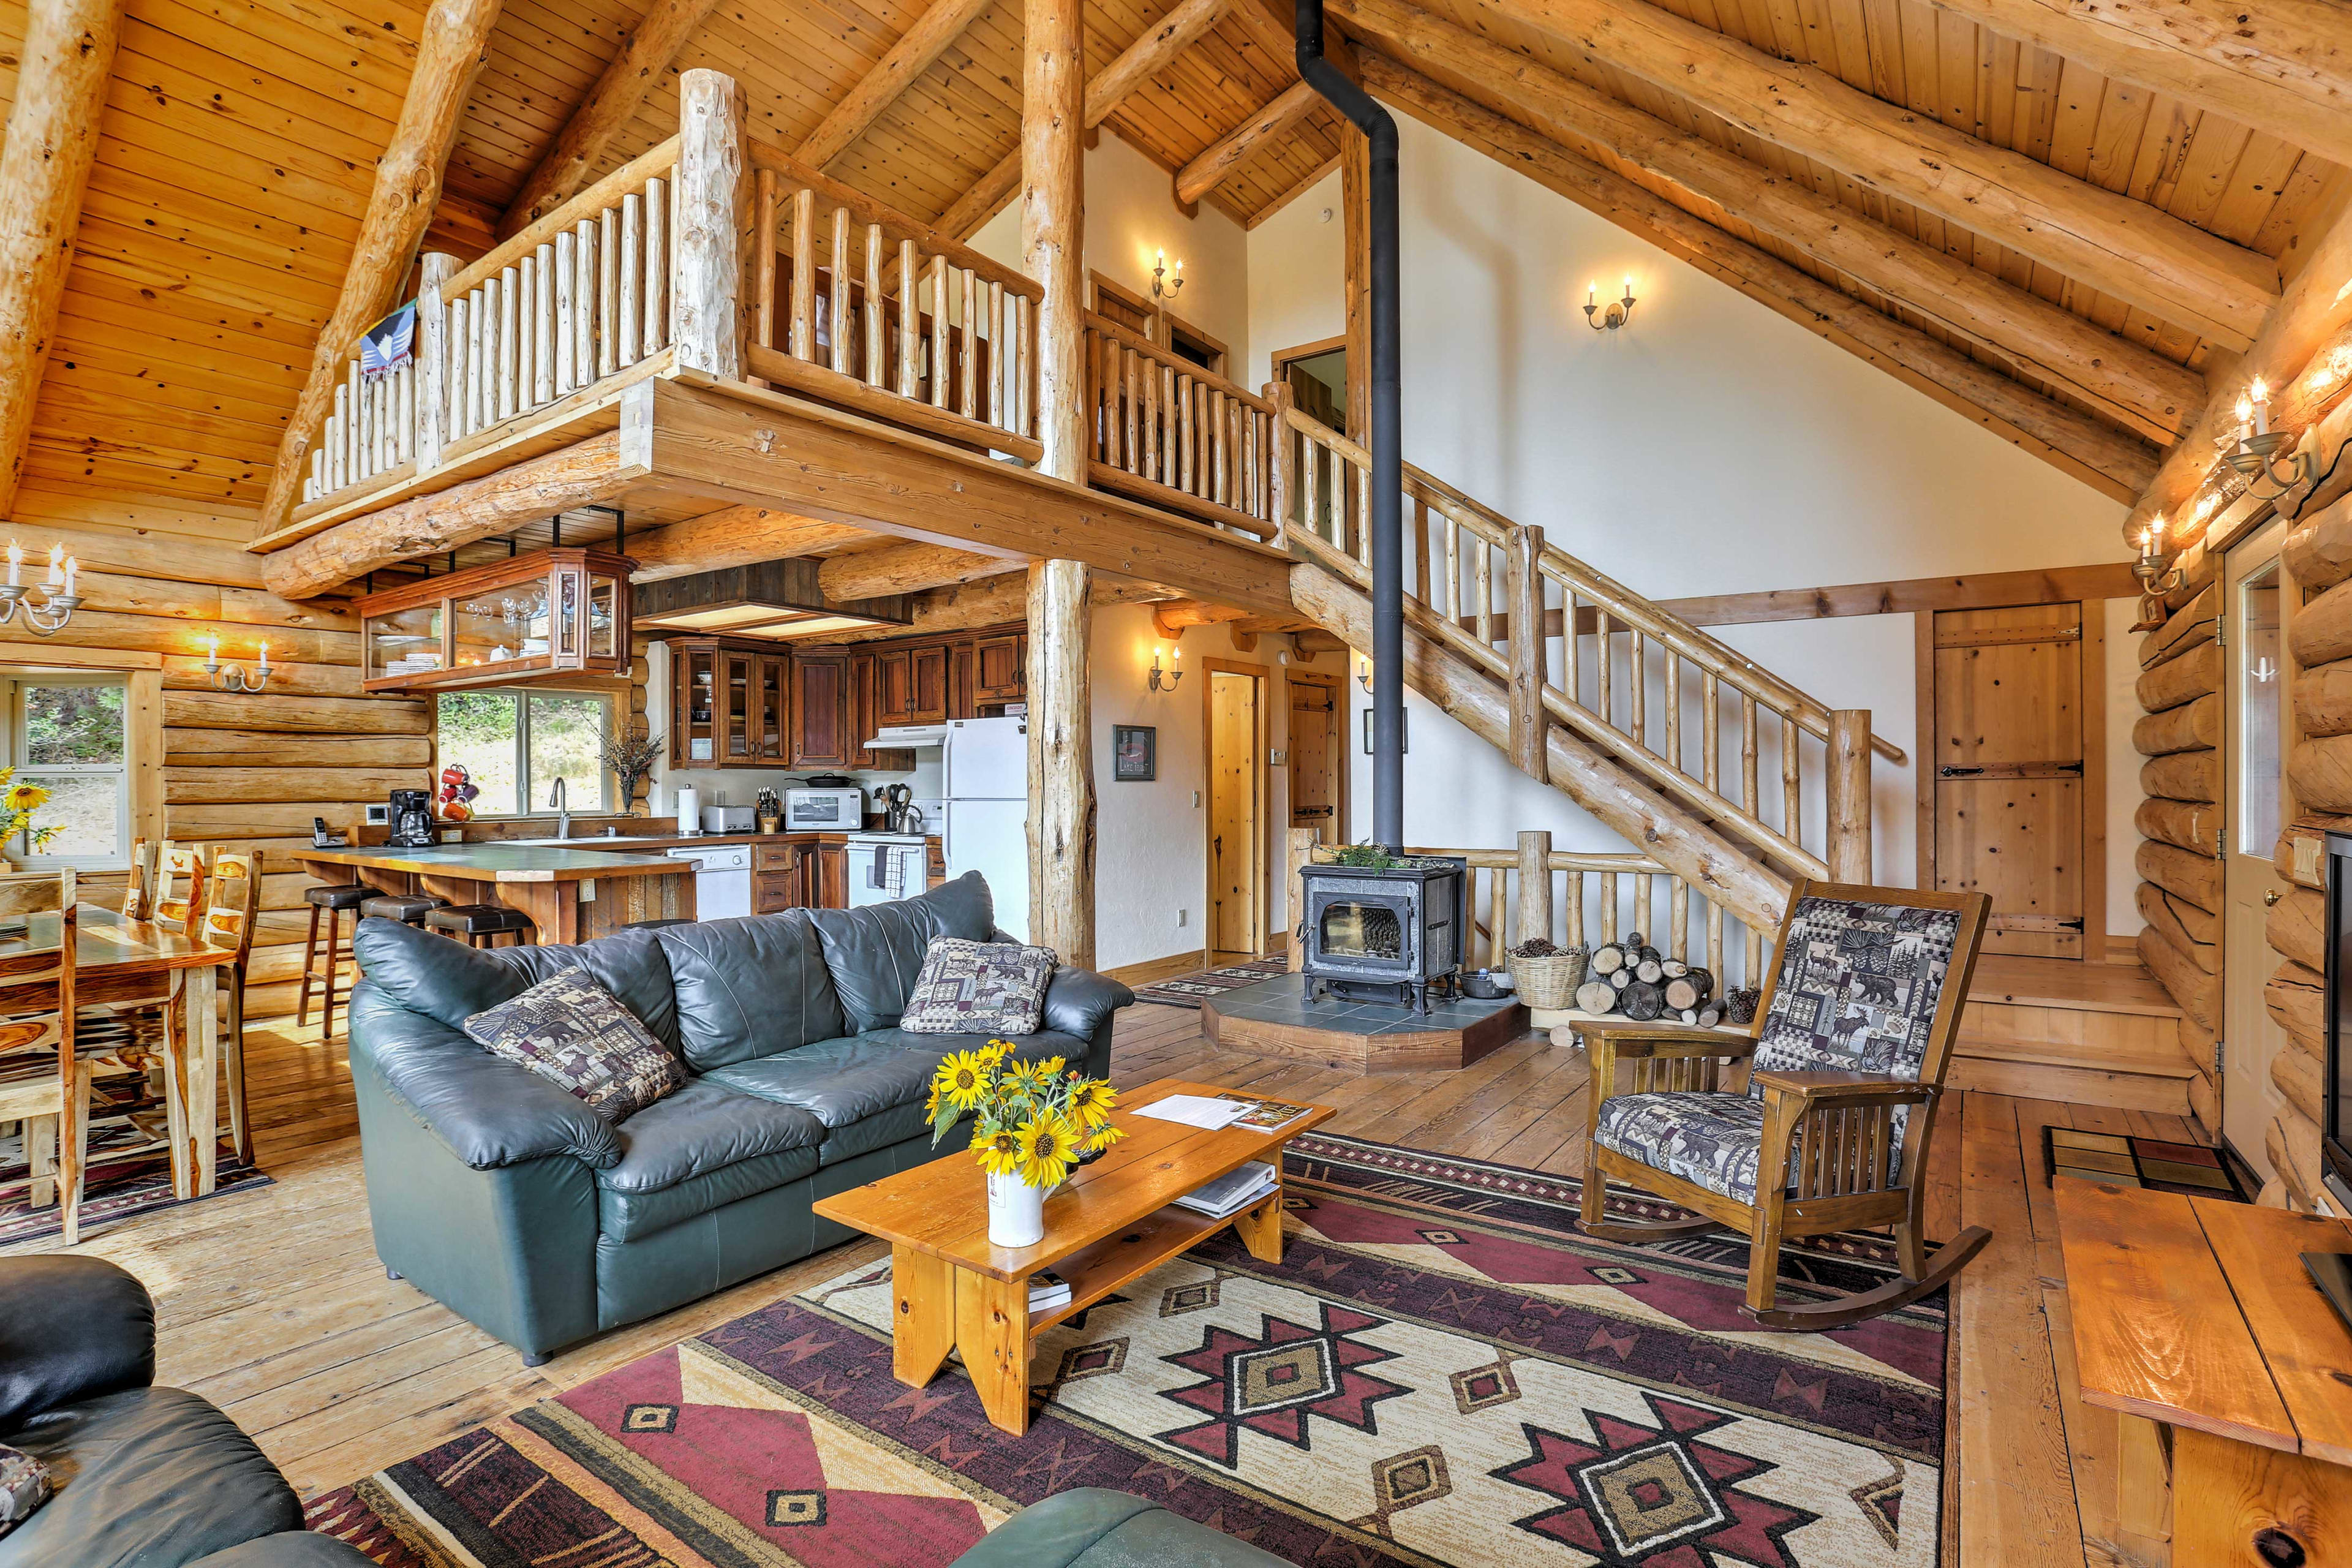 Enjoy the wood-burning stove, leather couches, and a flat-screen satellite TV.